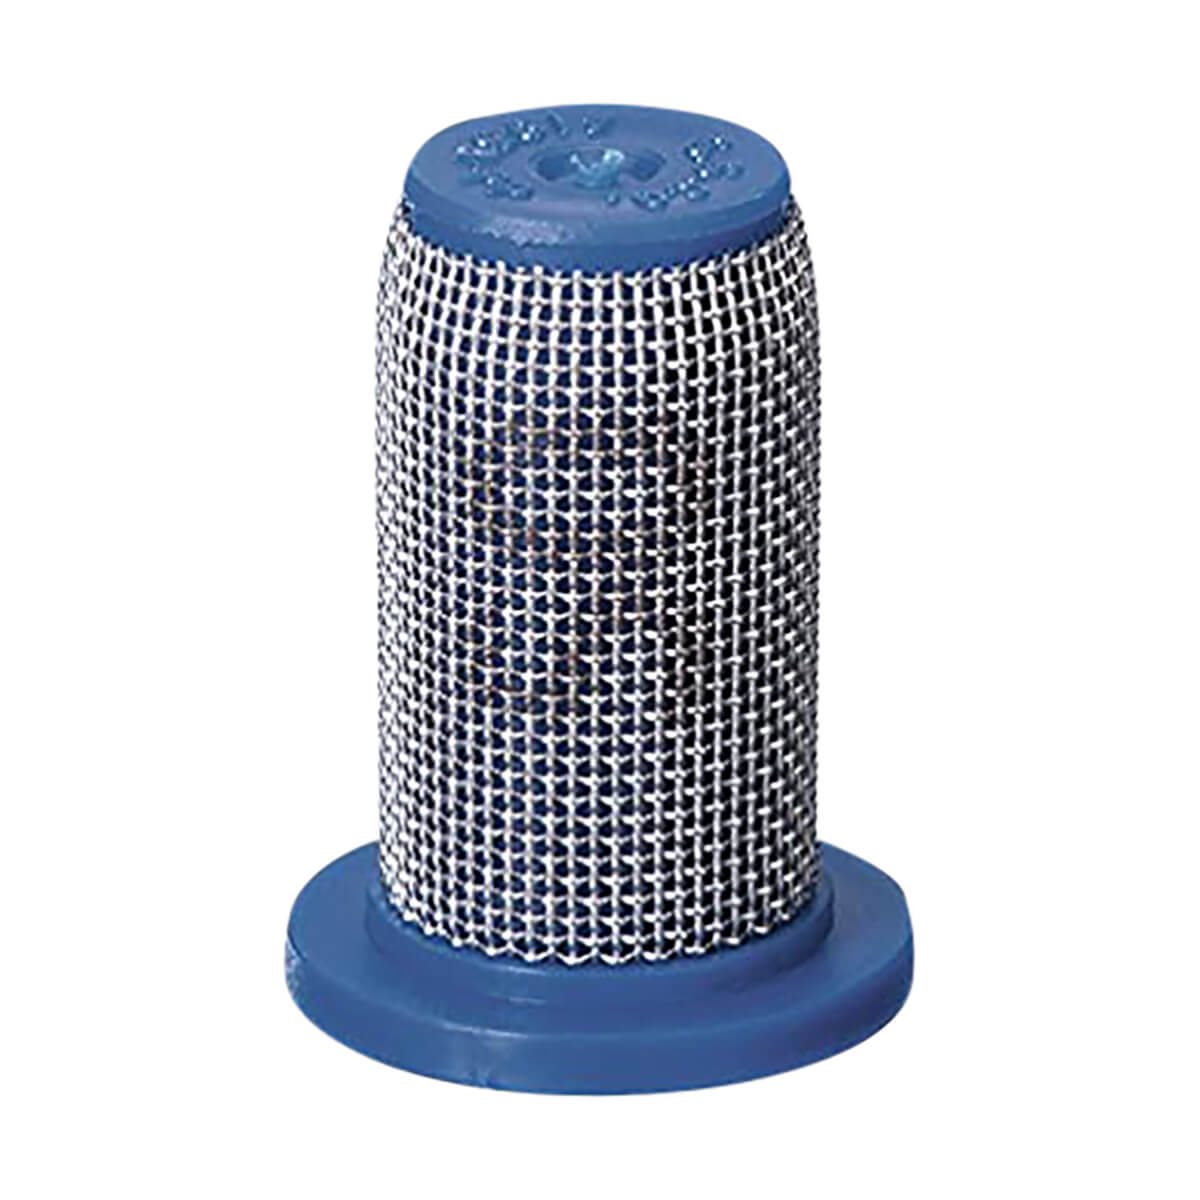 Nozzle Filter 50 Mesh Blue Stainless Steel Teejet